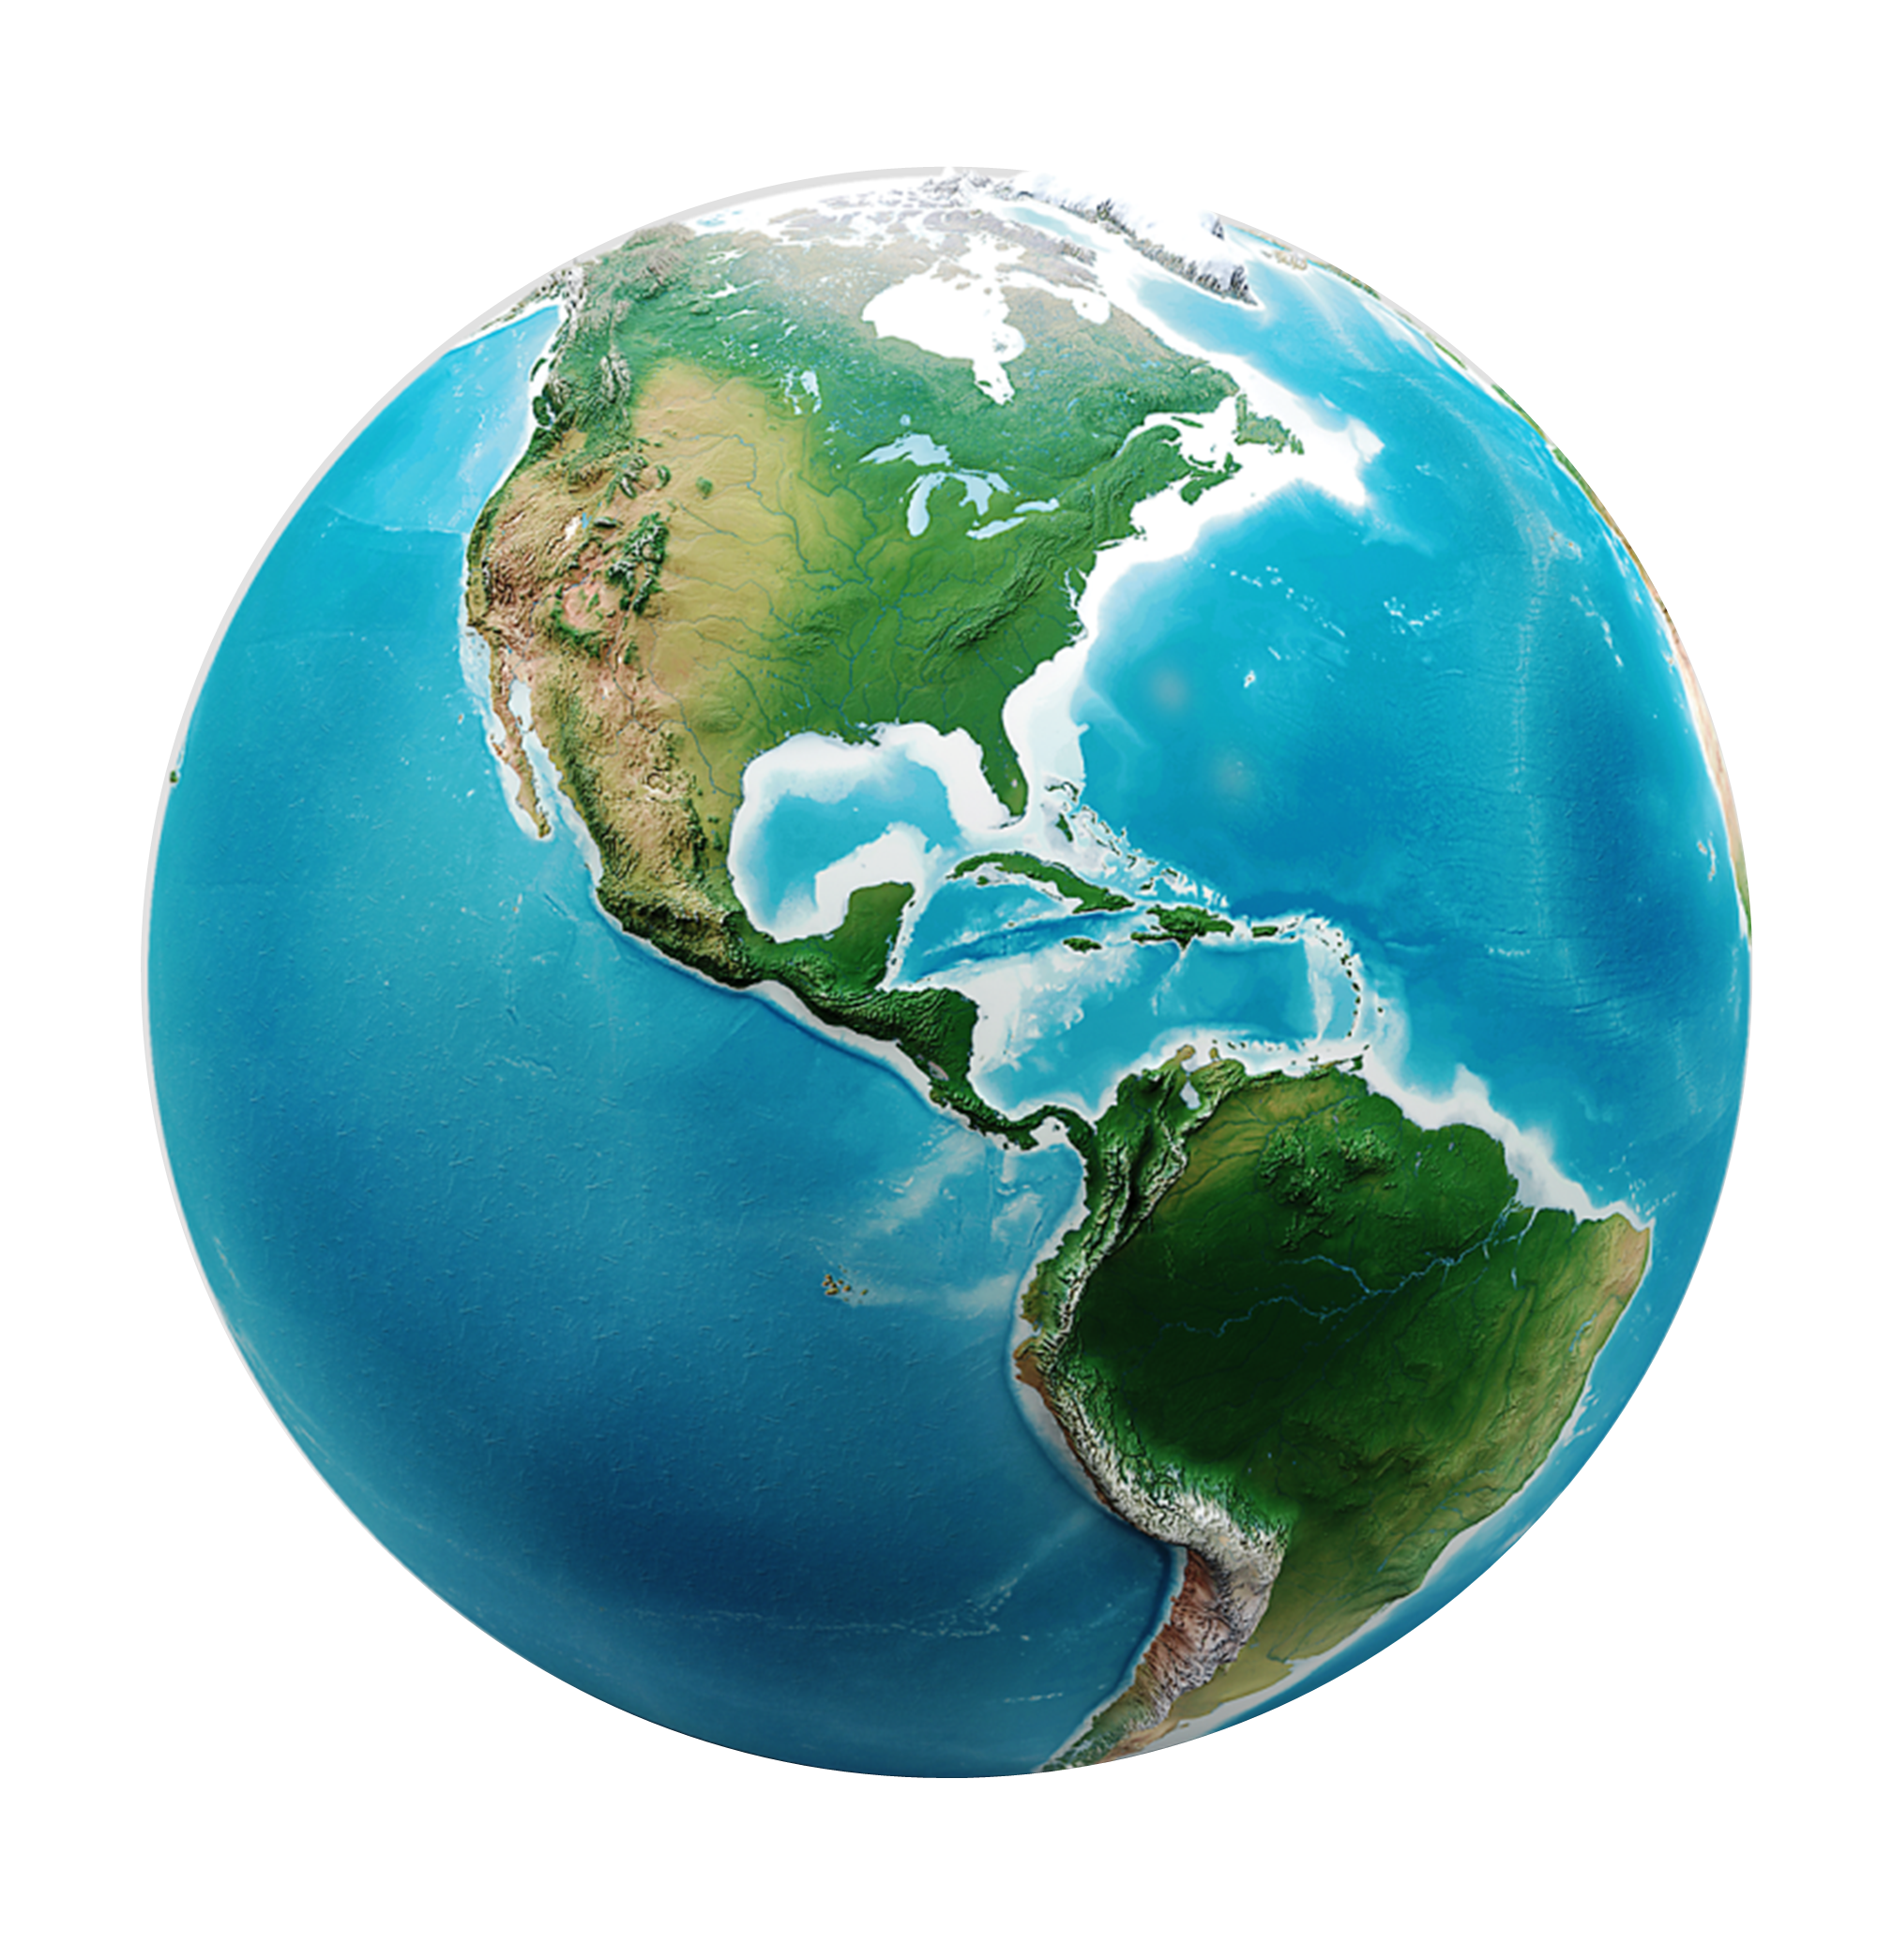 Download For Free Globe Png In High Resolution image #39520